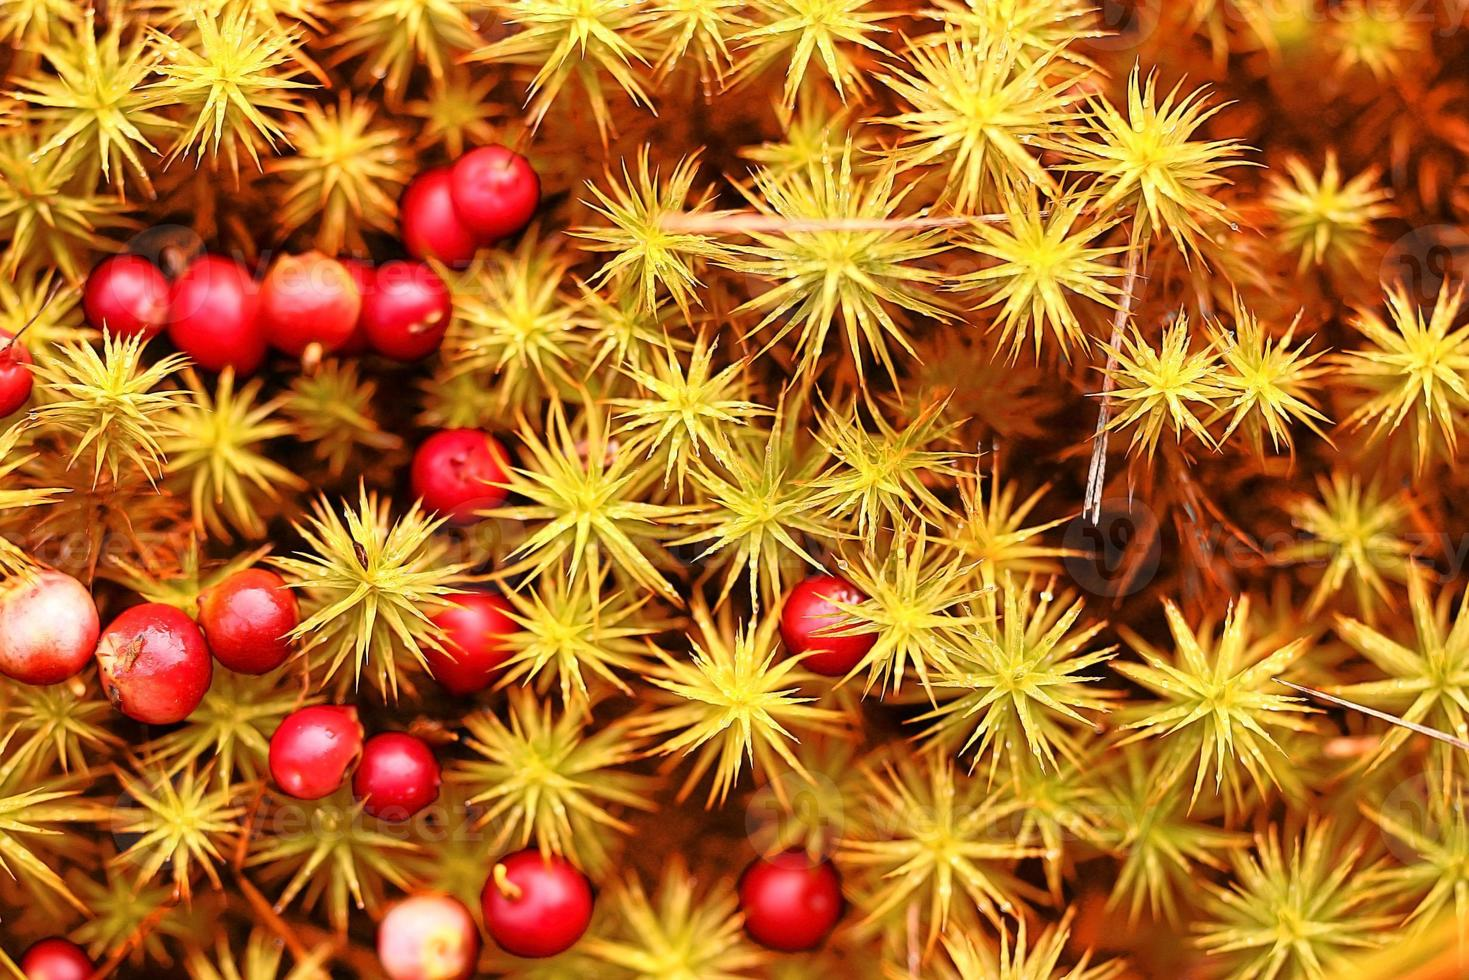 cranberries red berries background nature photo